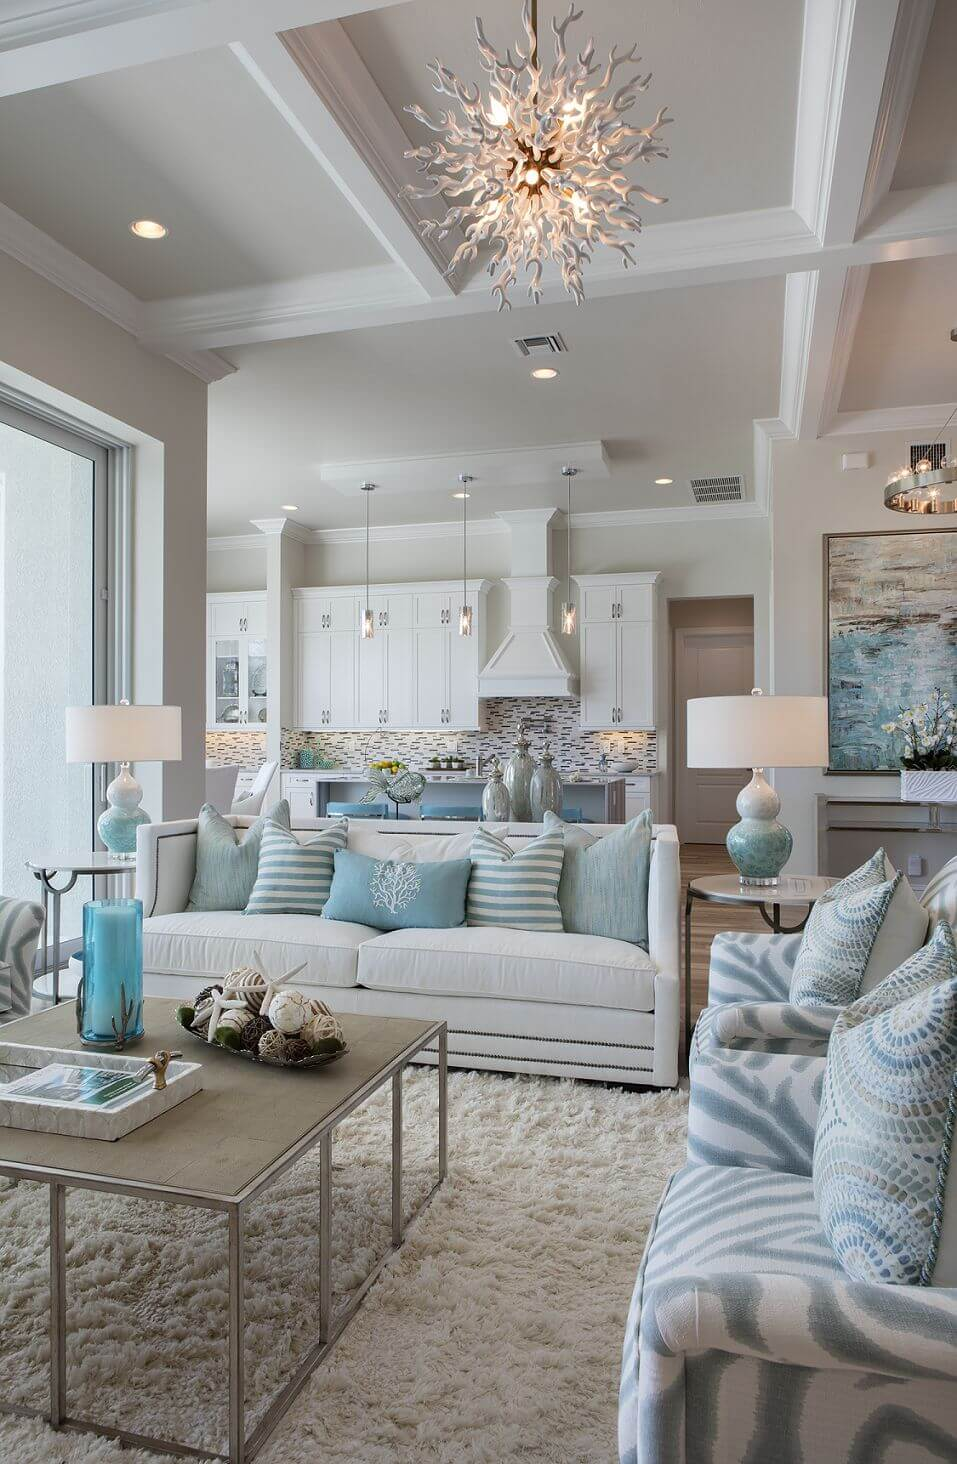 6 beach inspired living space with coral lighting